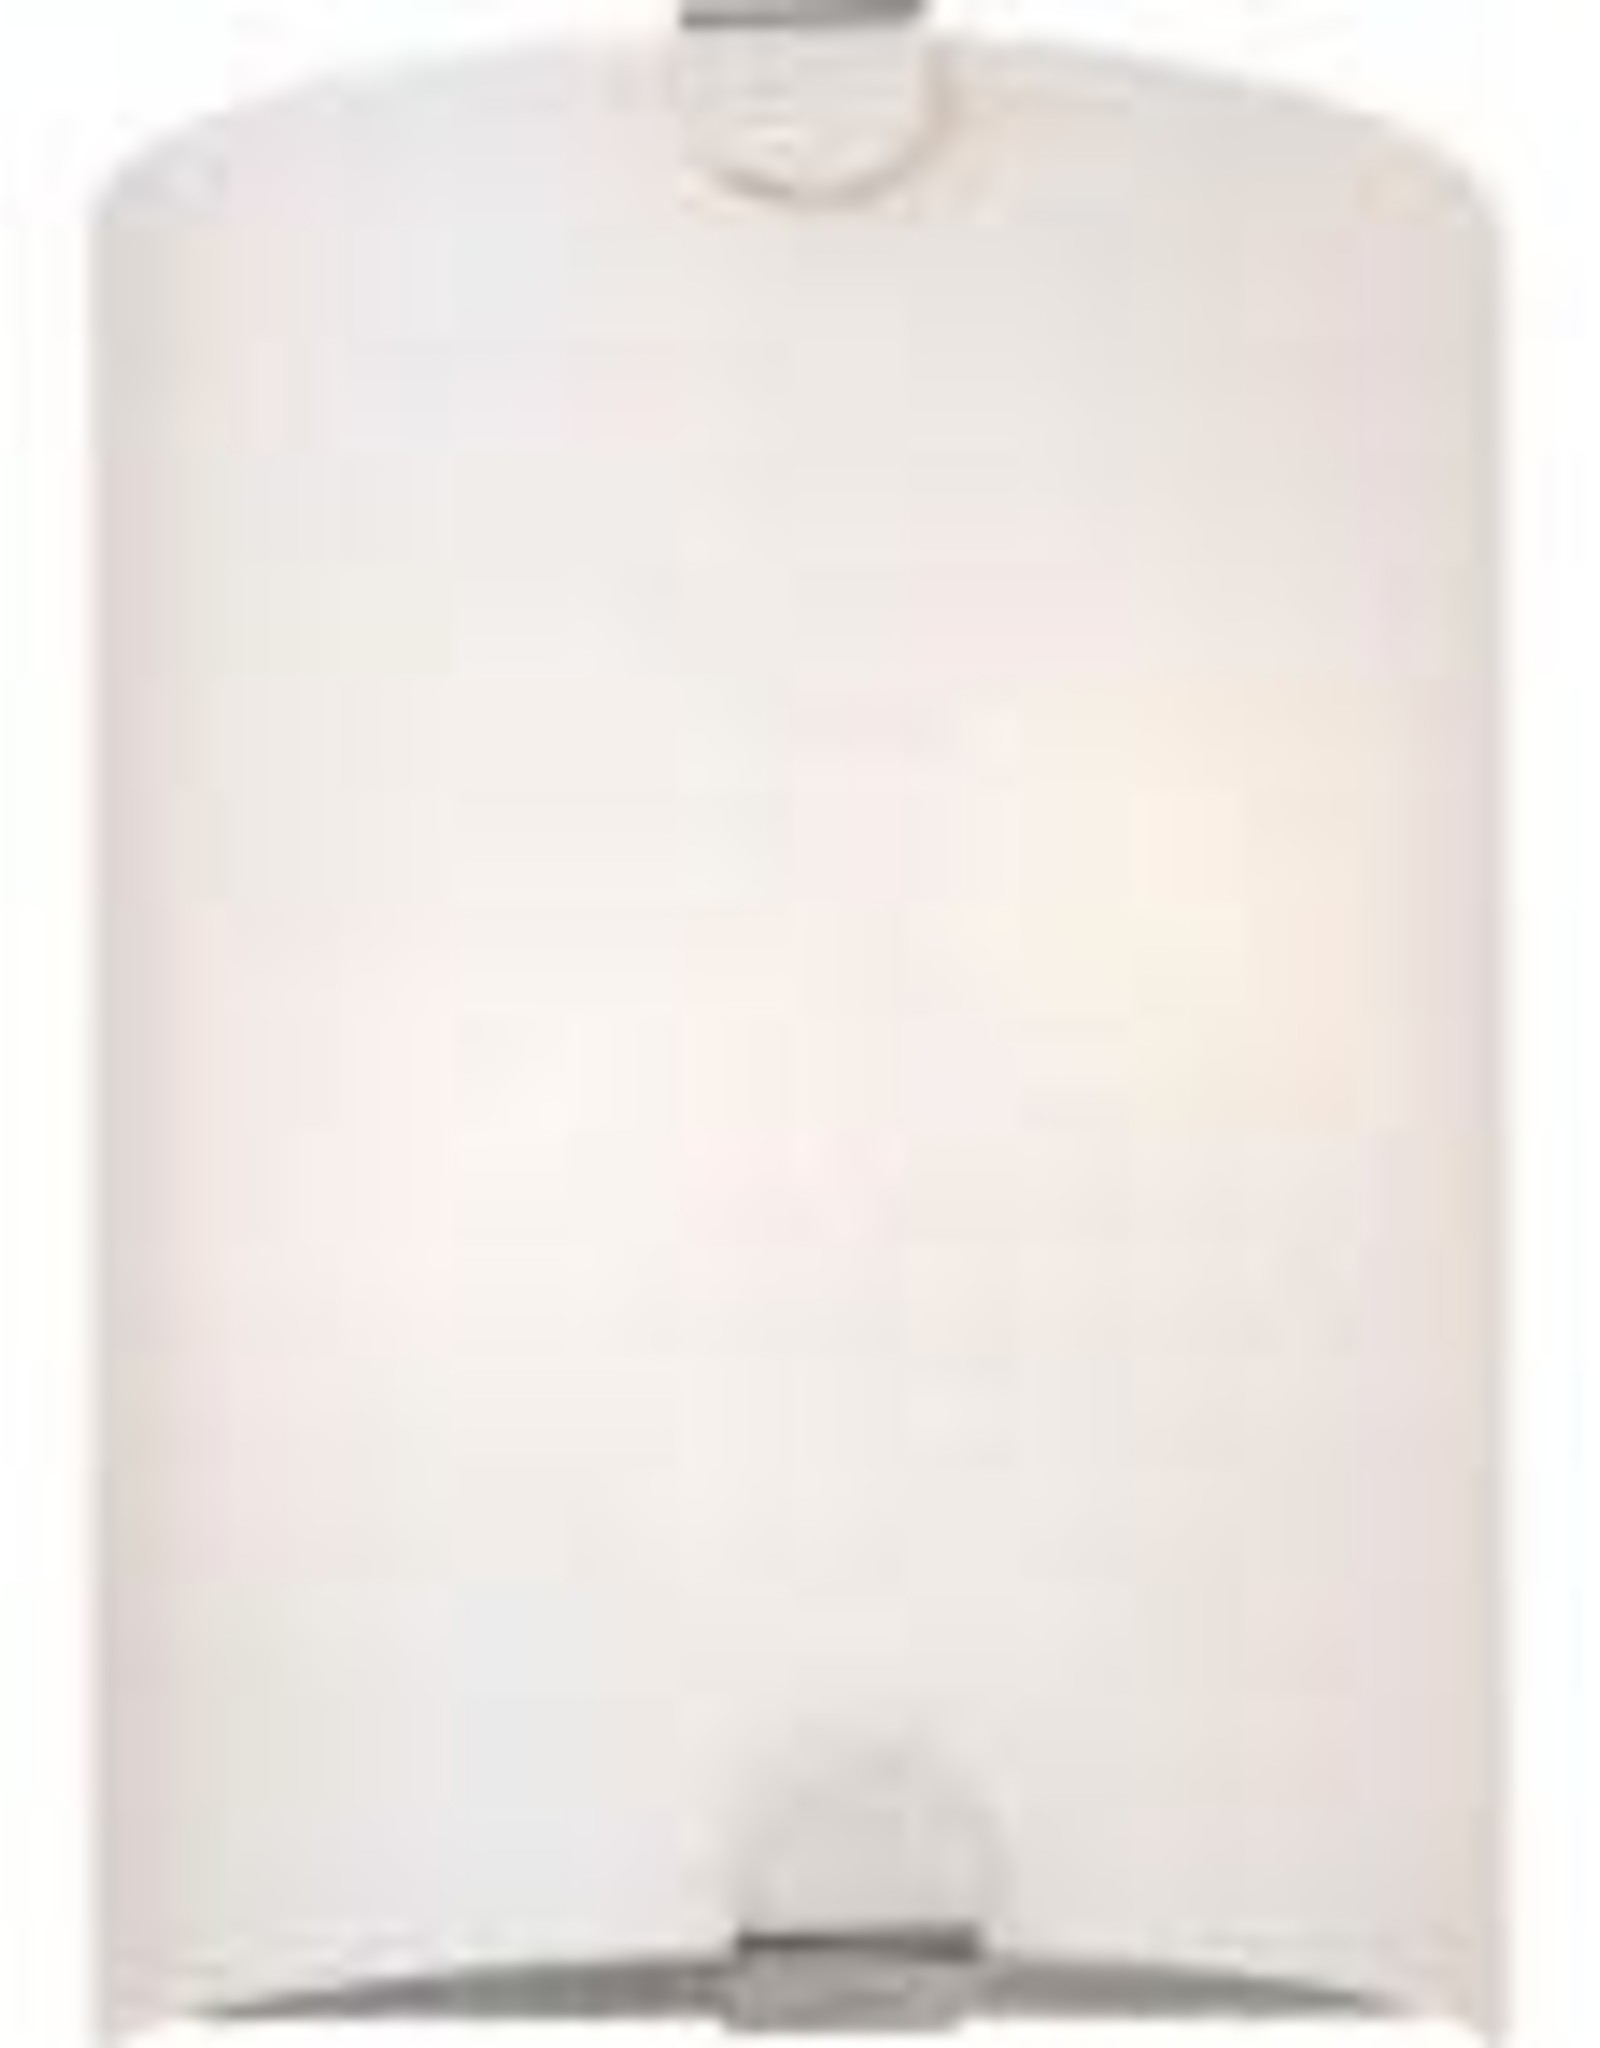 Volume Lighting Esprit 2-Light Indoor Brushed Nickel Wall Mount or Wall Sconce with White Glass Half Cylinder Shade